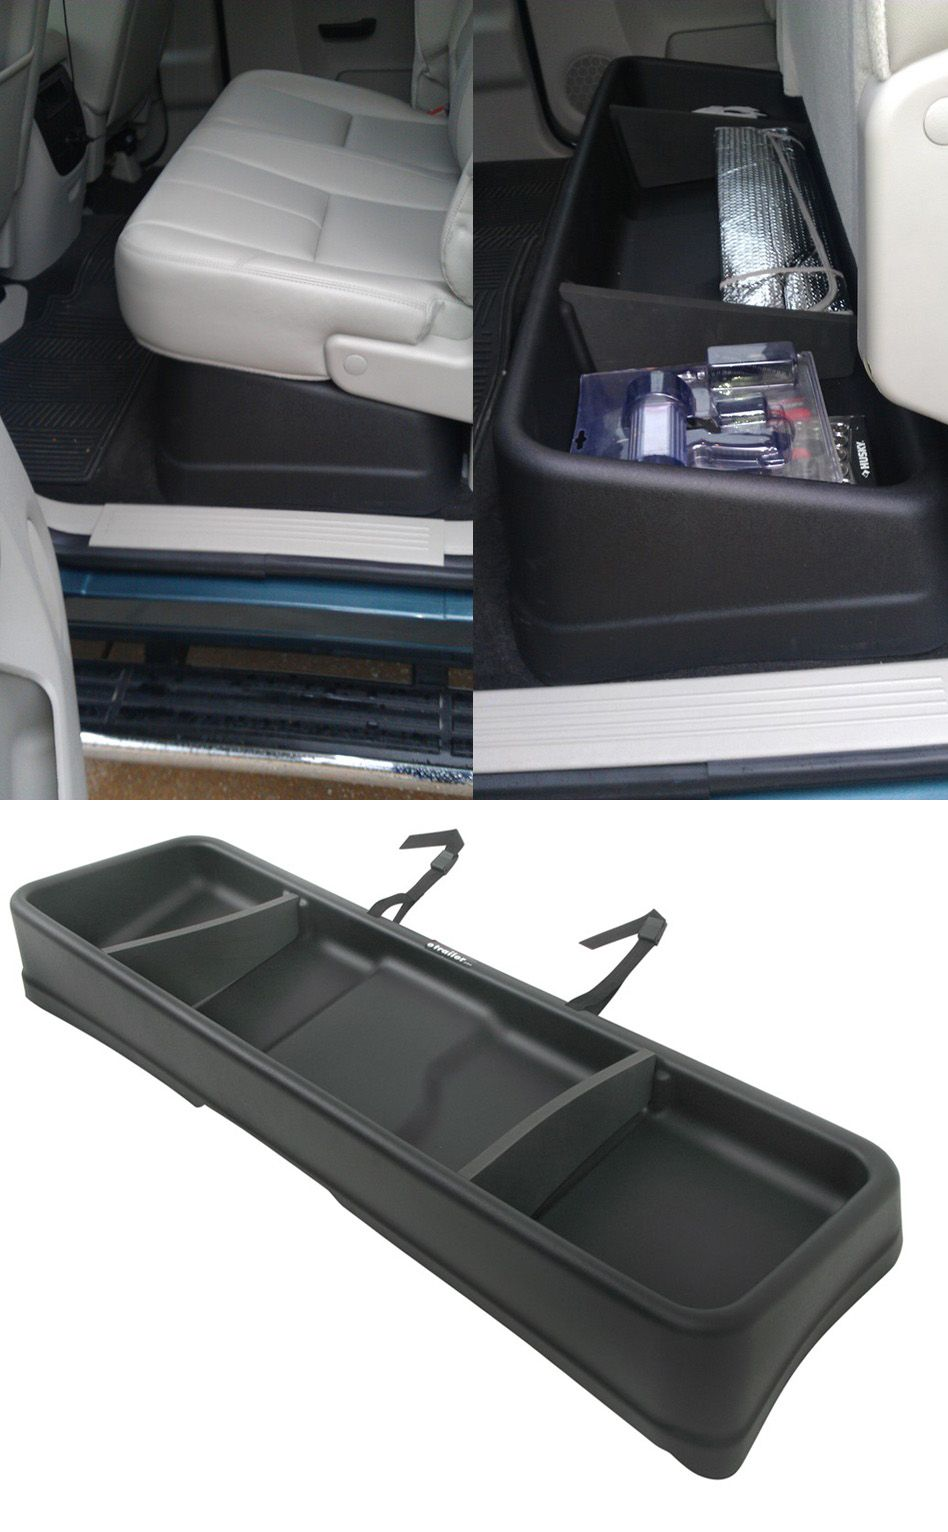 hight resolution of large capacity cargo box compatible with the gmc sierra and fits perfectly beneath the rear seats of the truck minimizes cargo shifting store tools